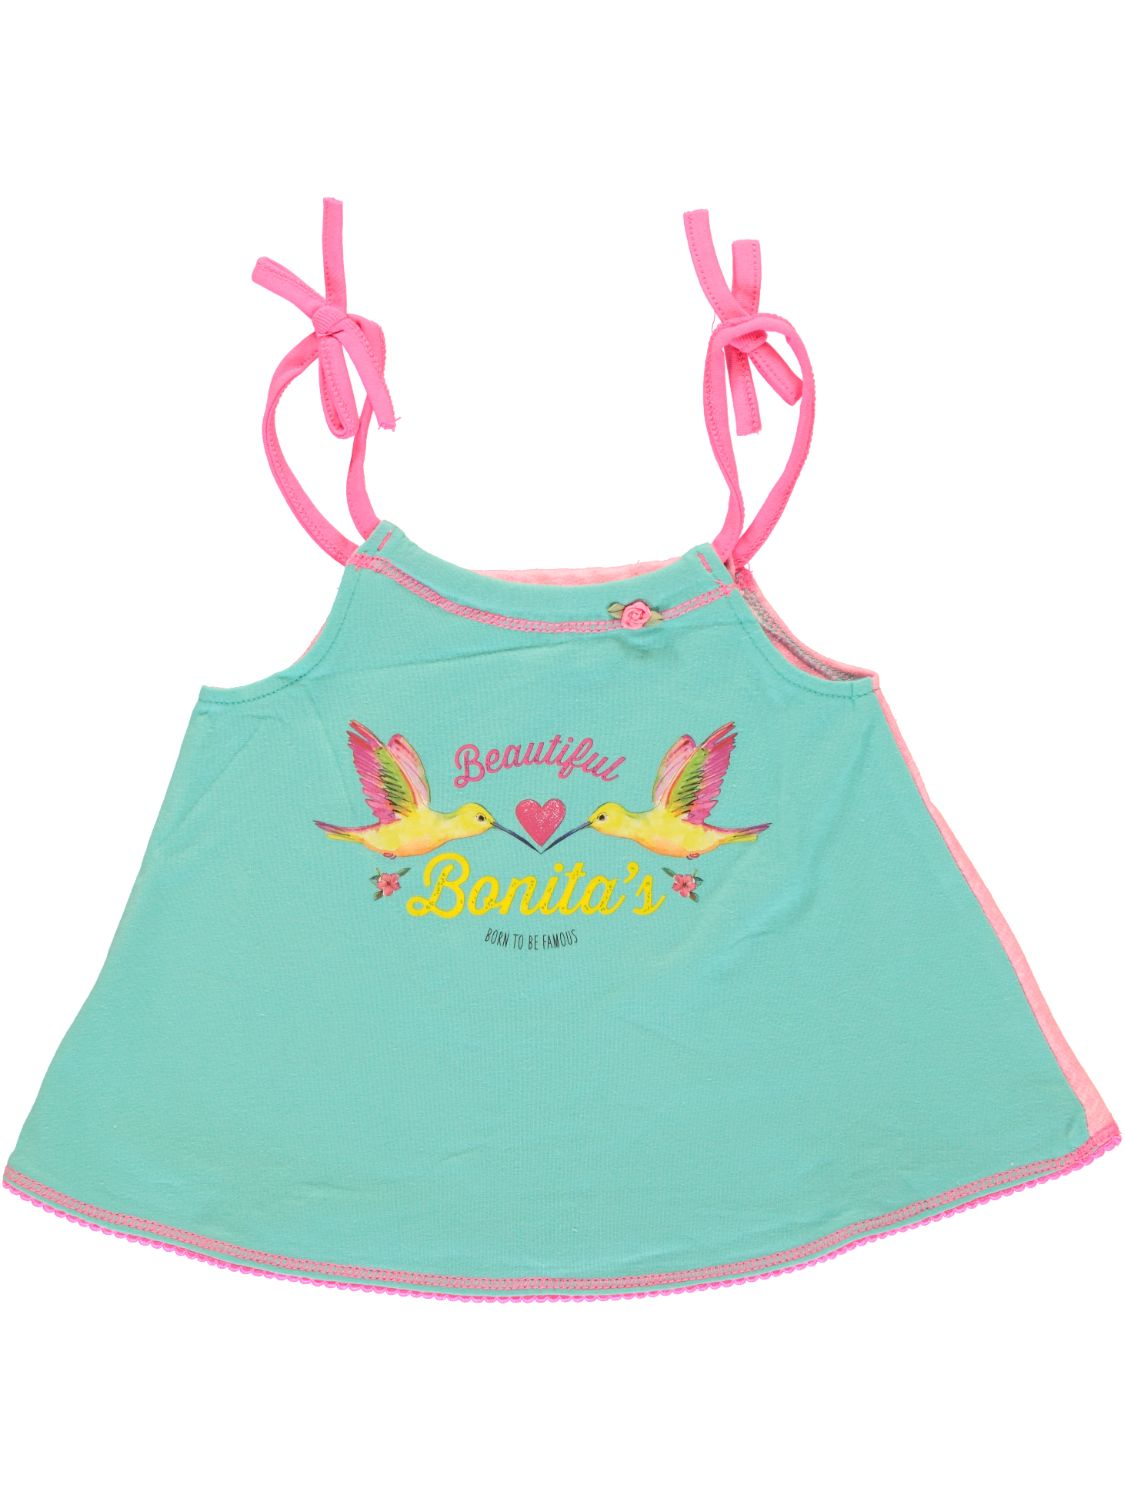 Born to be Famous Top